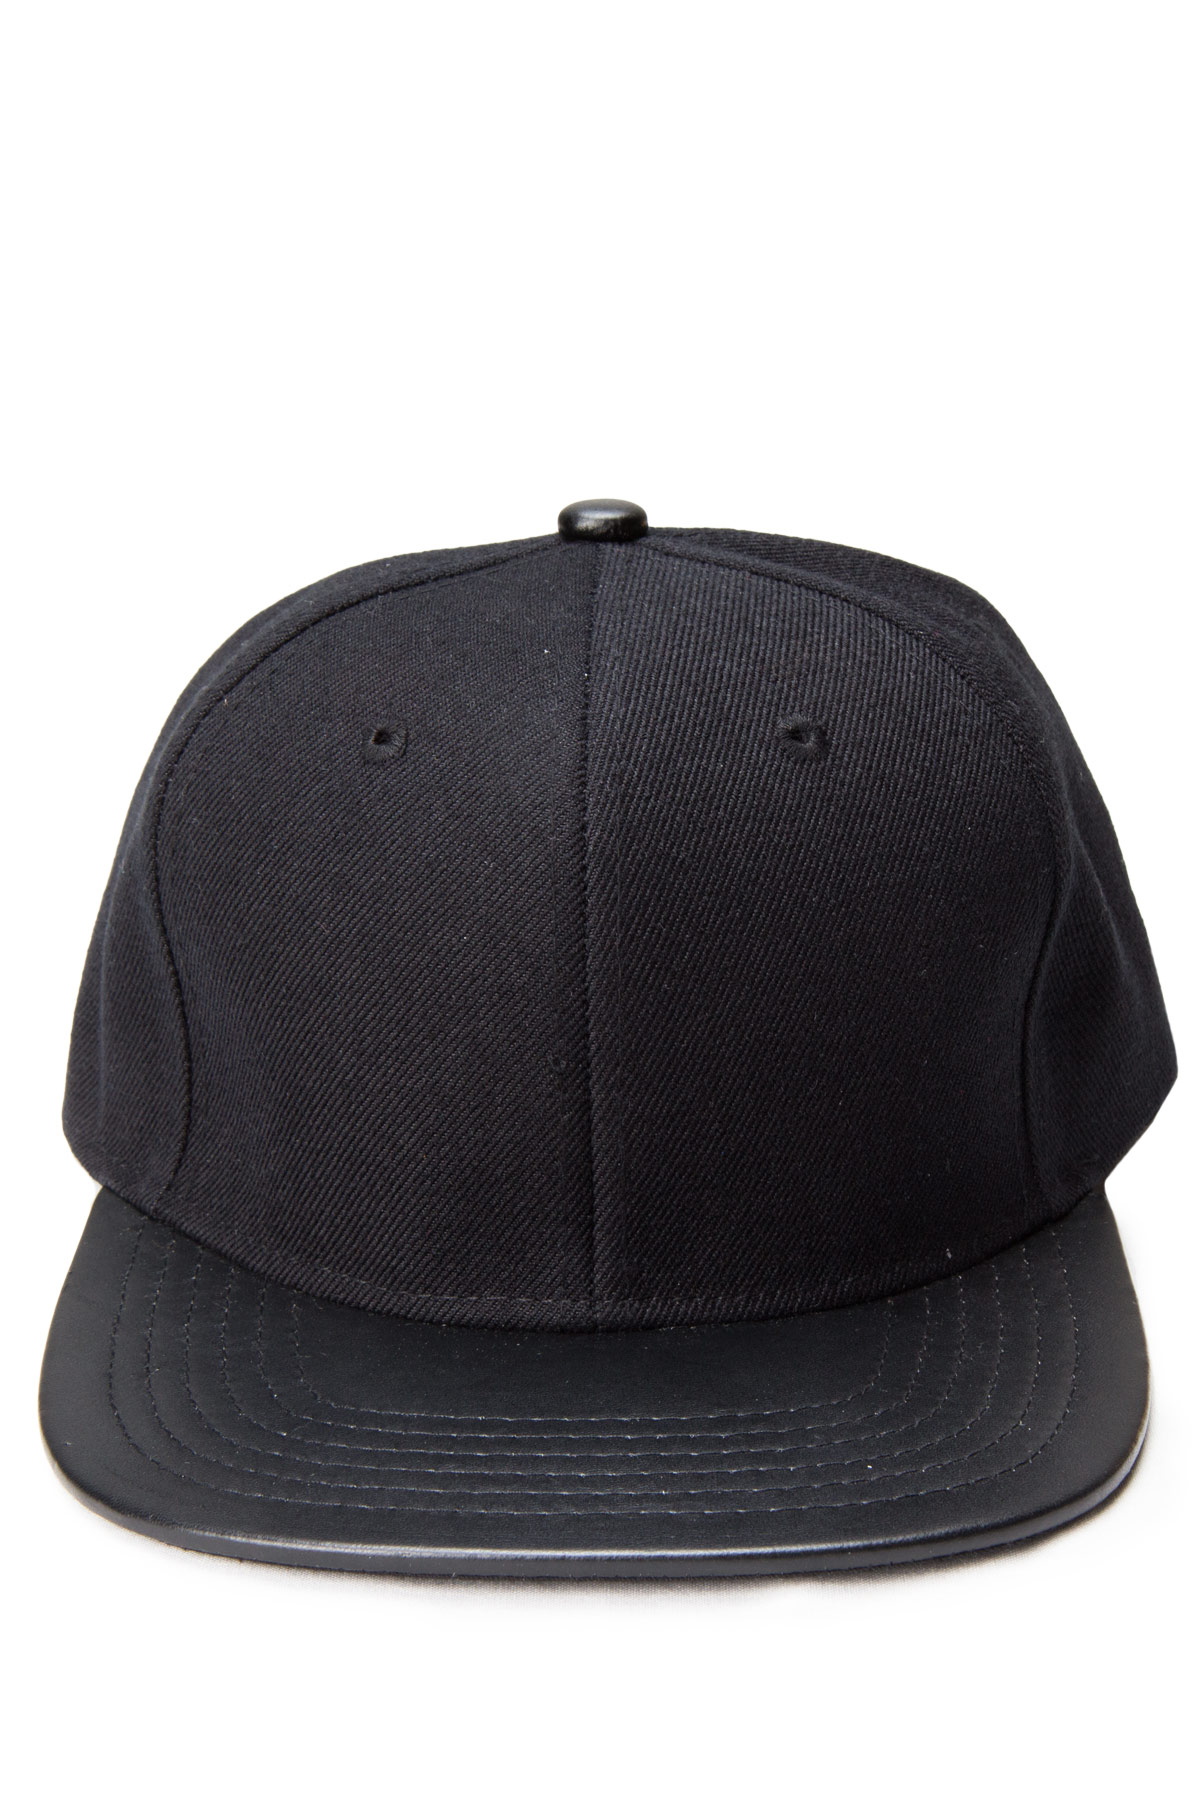 black snap hat